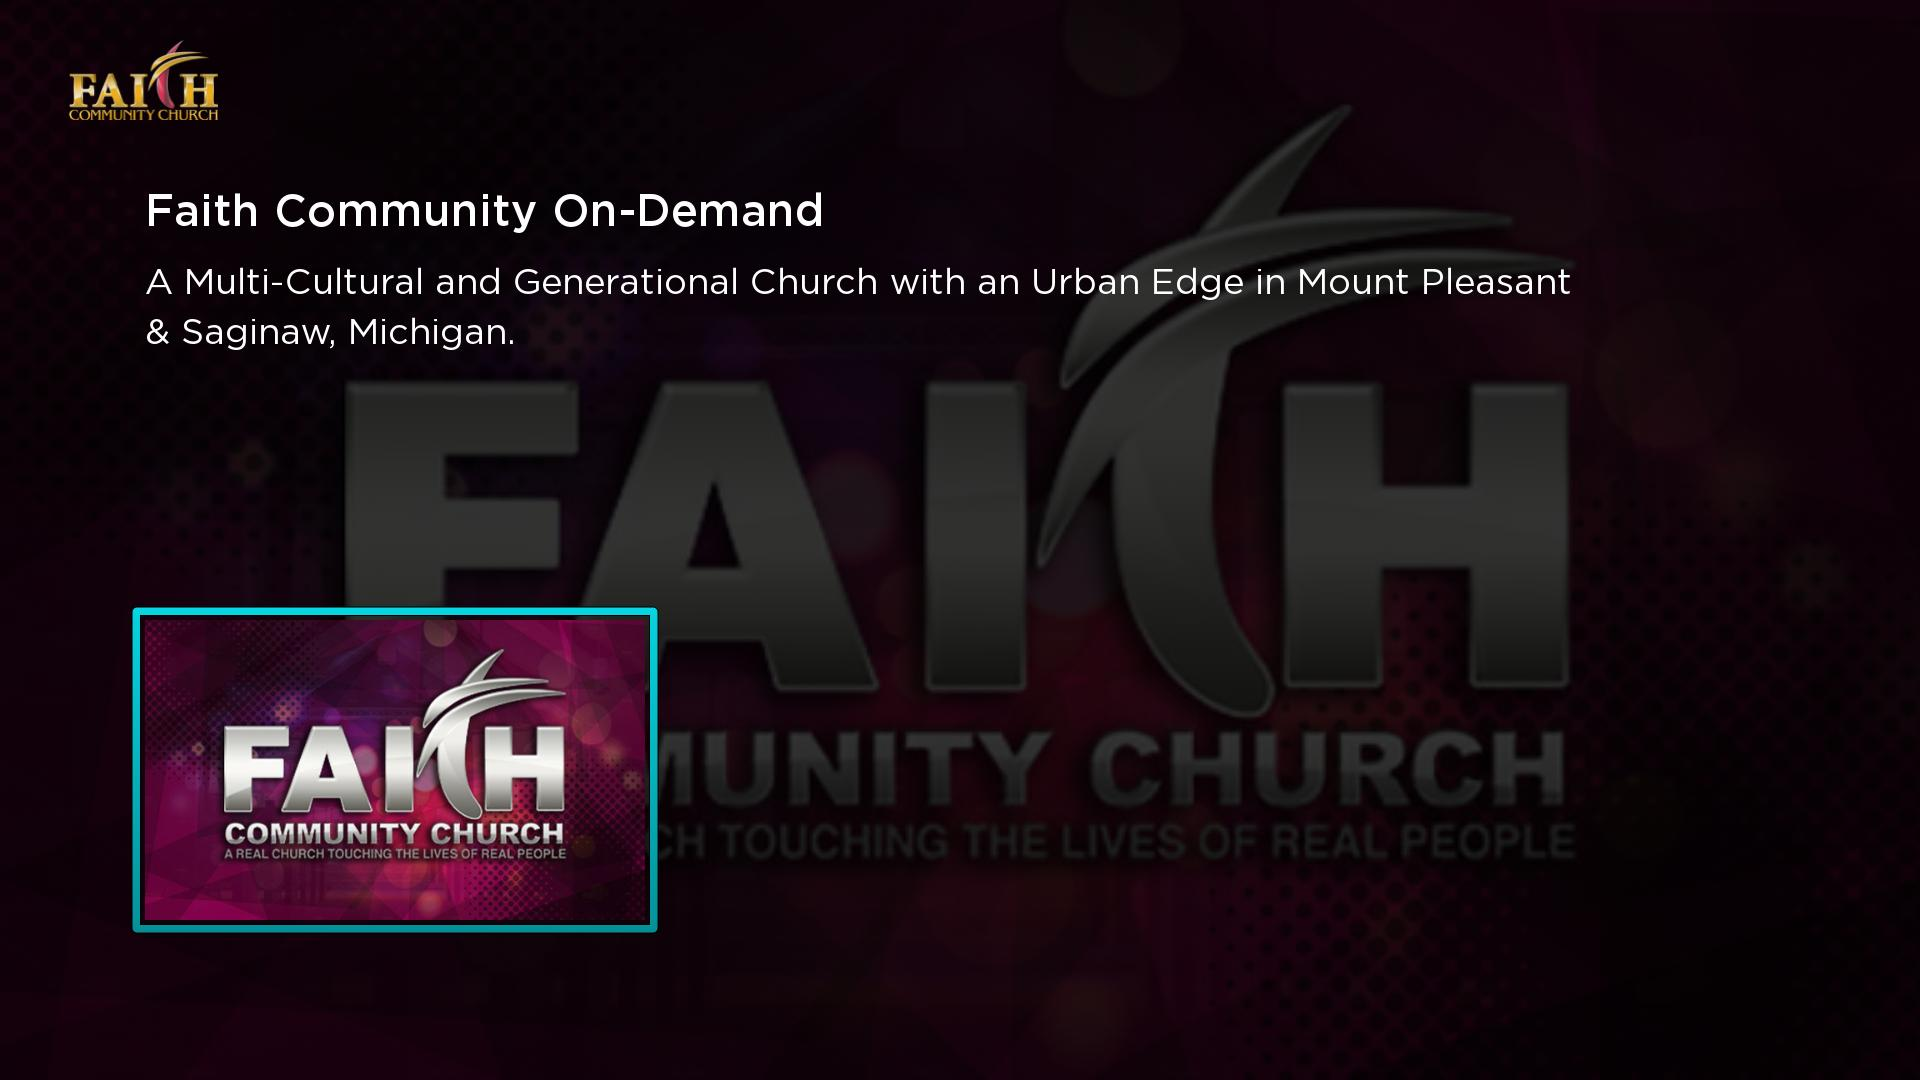 Faith Community Church Screenshot 001